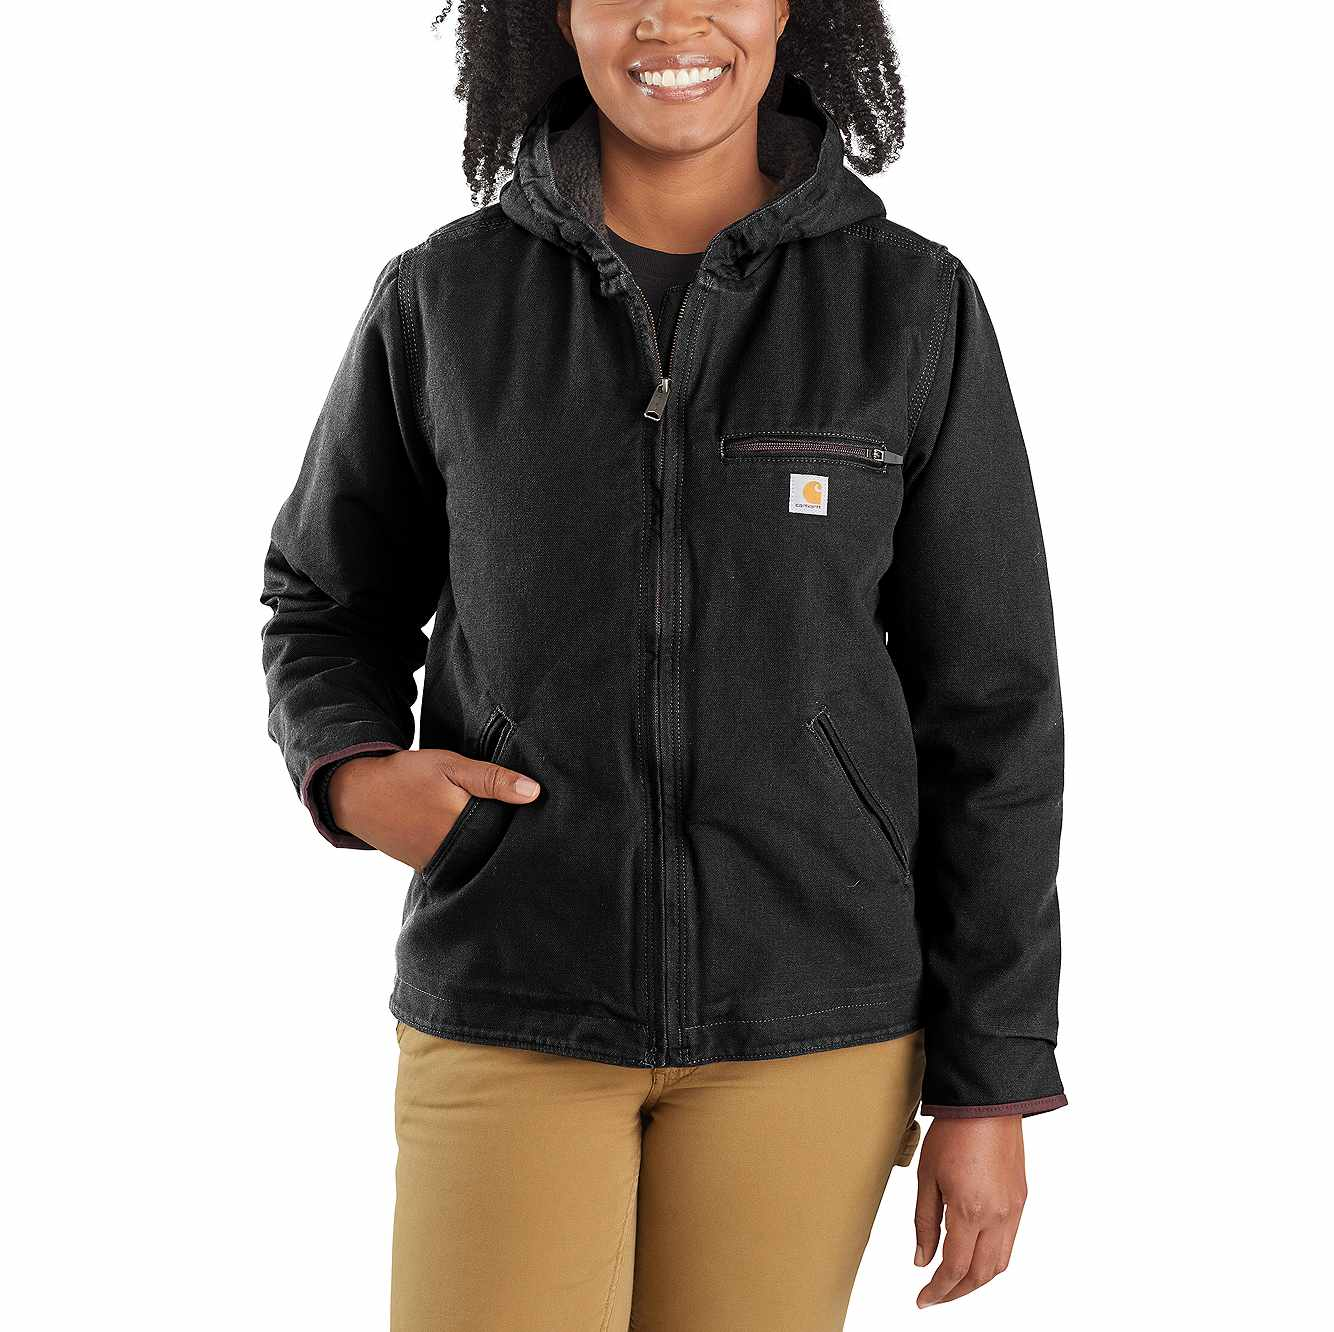 Picture of Women's Washed Duck Sherpa Lined Jacket in Black